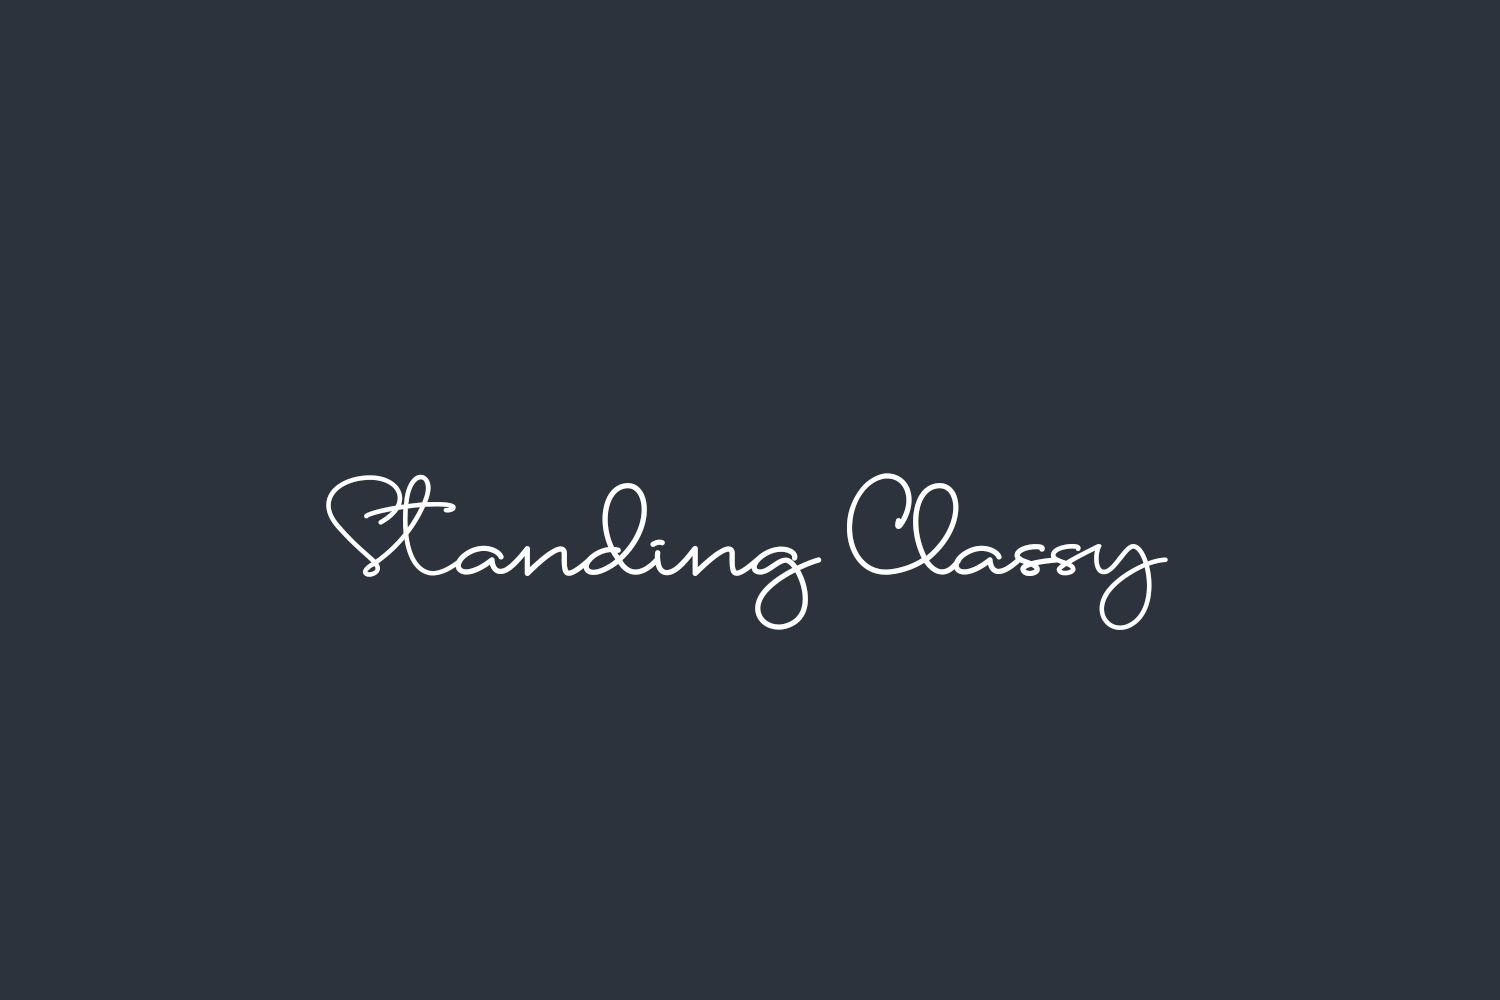 Standing Classy Free Font